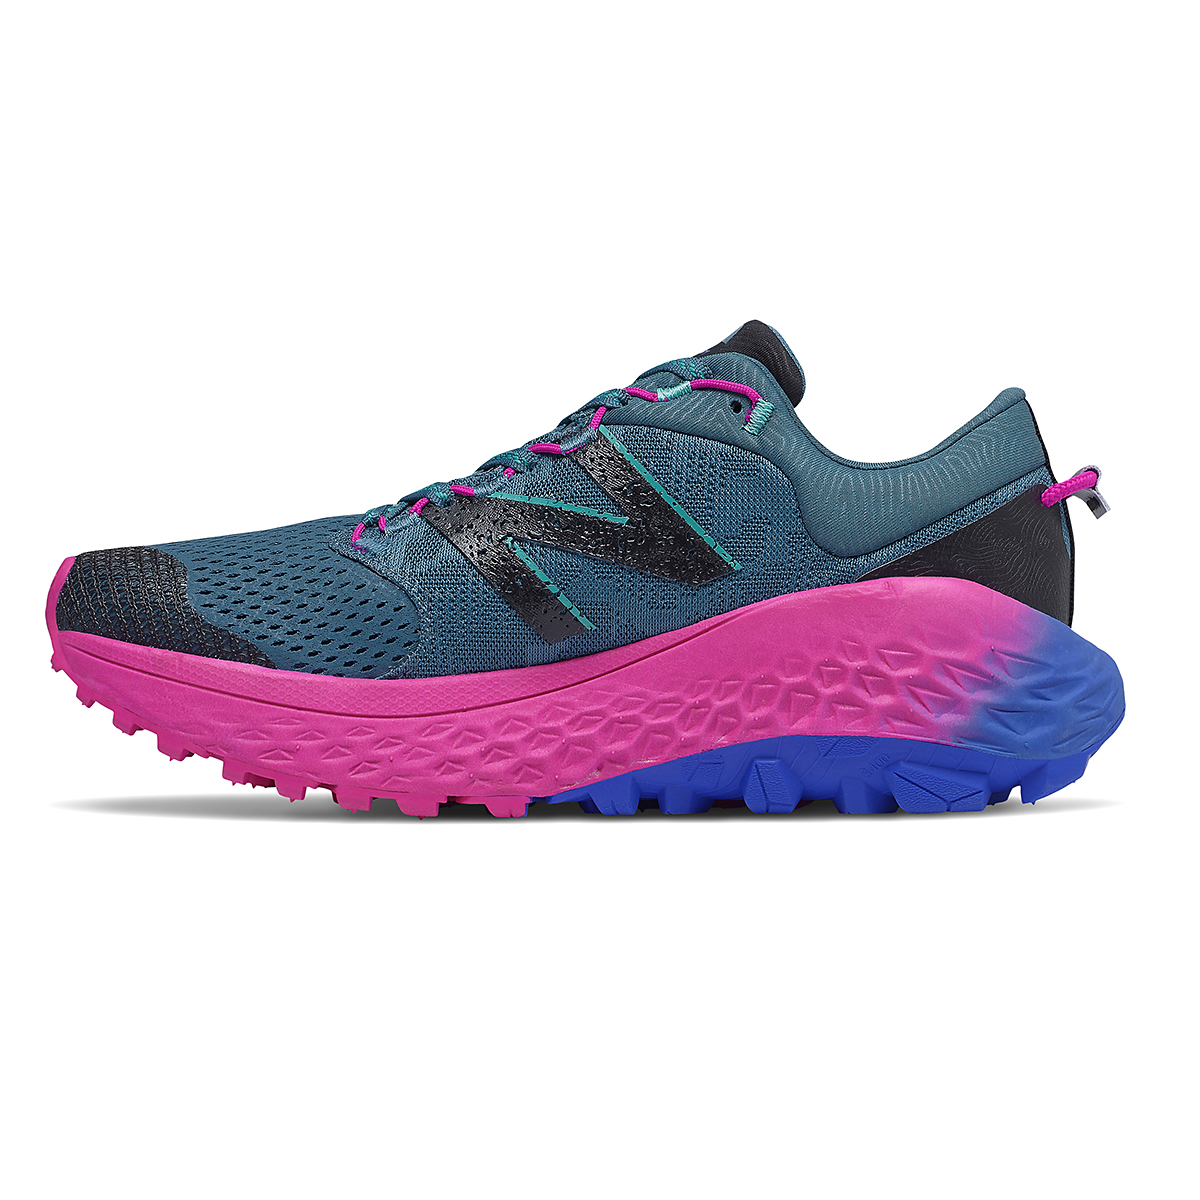 Women's New Balance Fresh Foam More Trail V1 Running Shoe - Color: Jet Stream - Size: 5.5 - Width: Extra Wide, Jet Stream, large, image 2